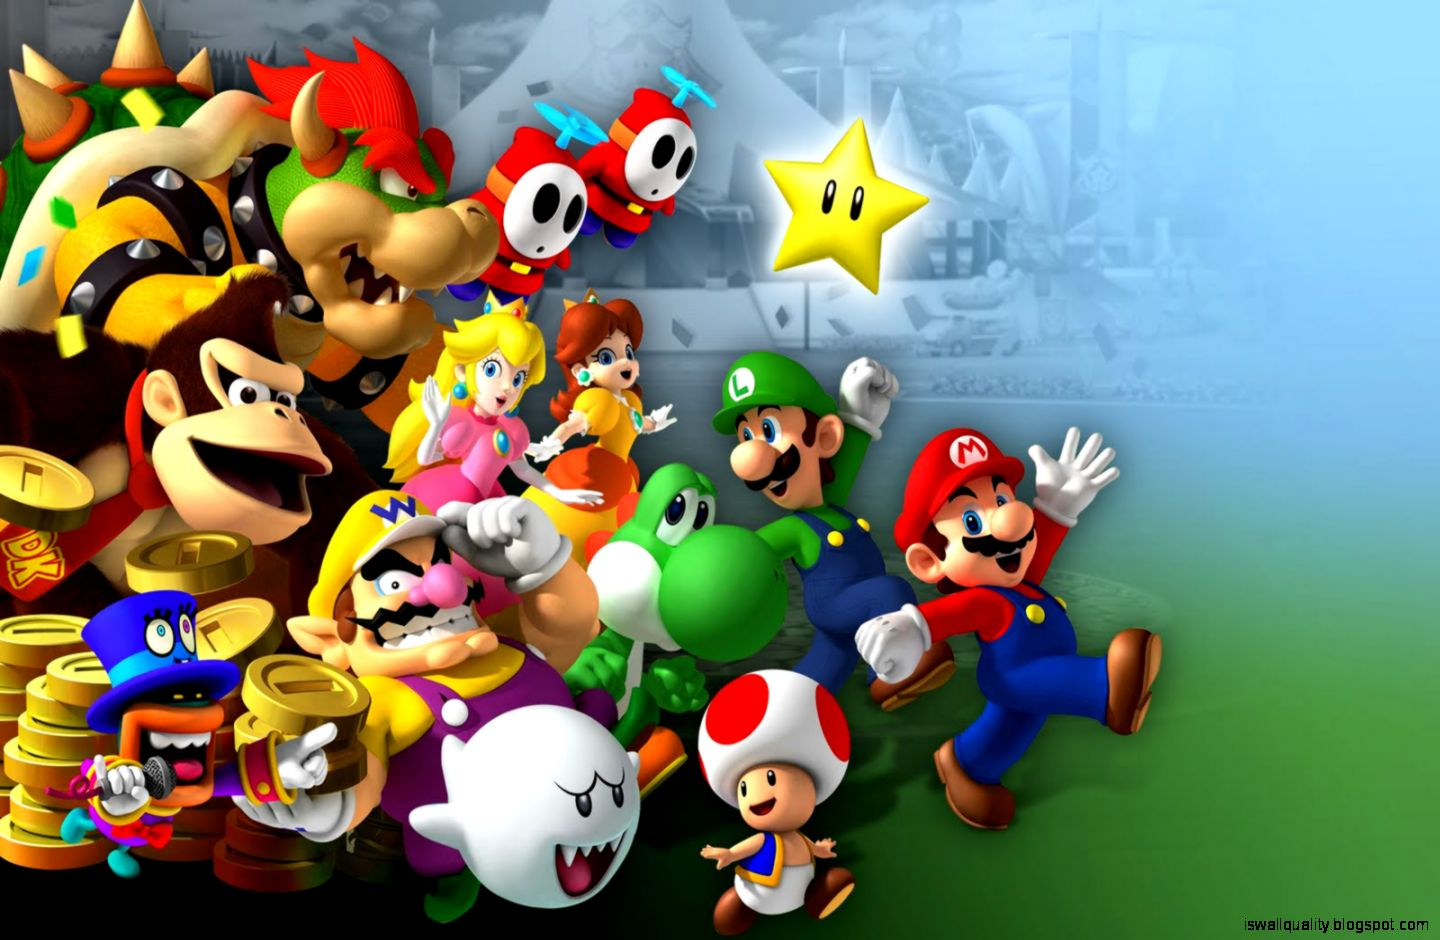 Best Hd Super Mario Wallpaper Wallpapers Quality